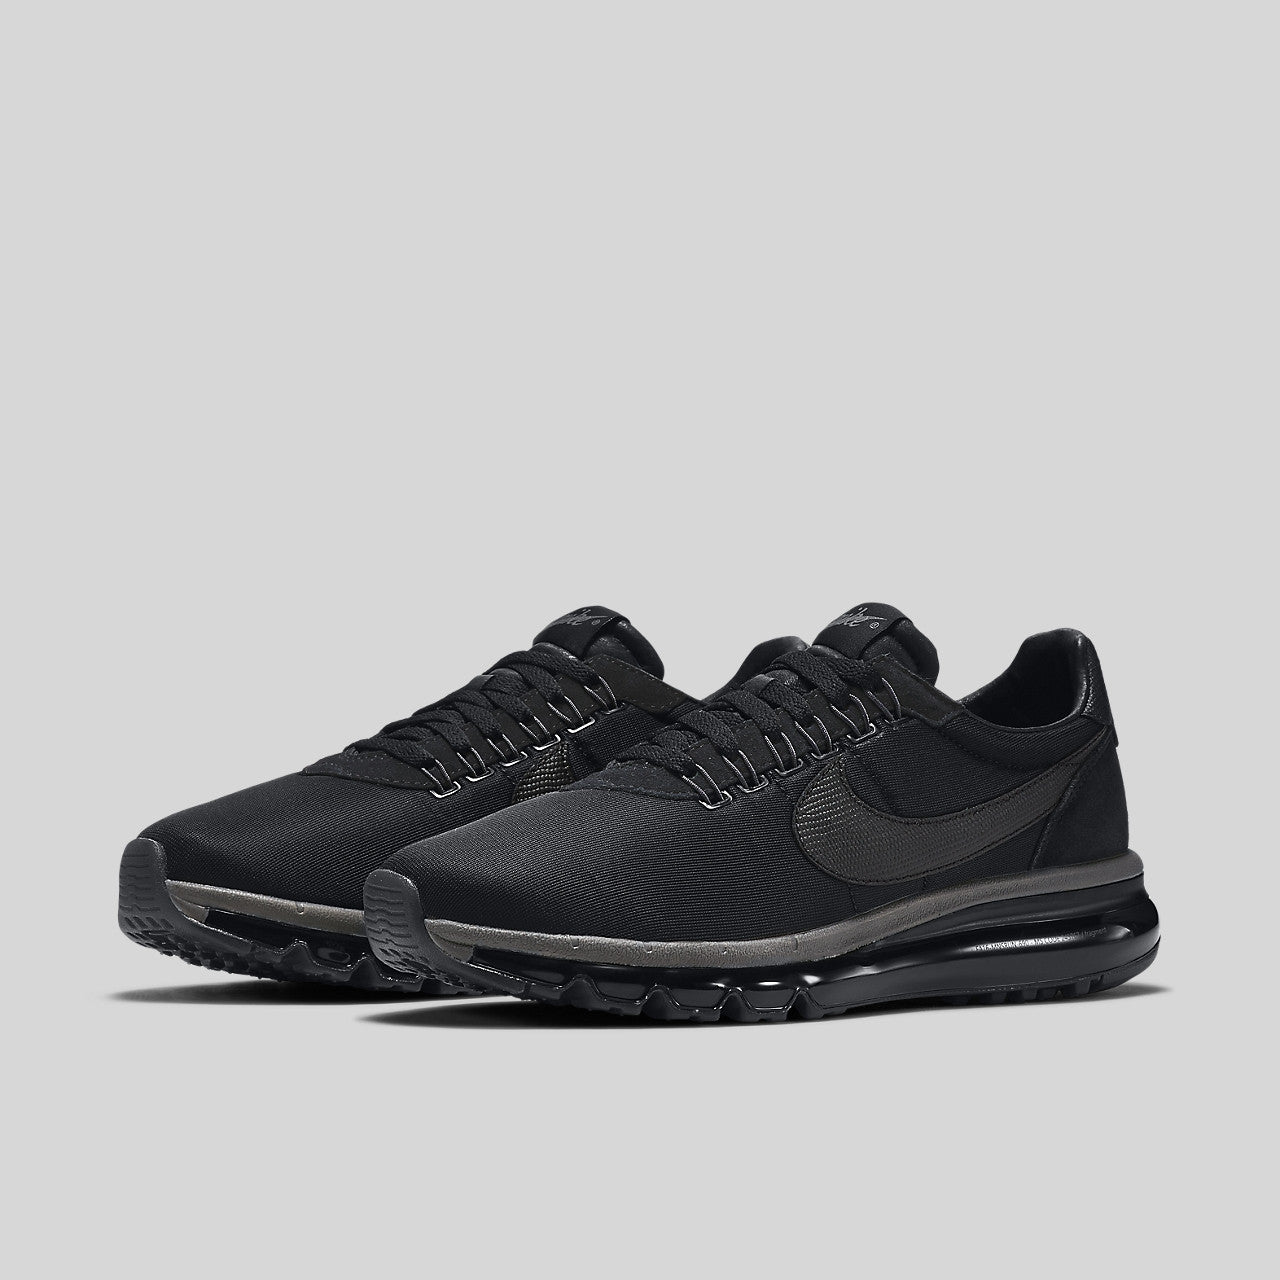 finest selection 842c1 2be26 Nike Air Max LD-Zero   Fragment Triple Black. Item Number  885893-001